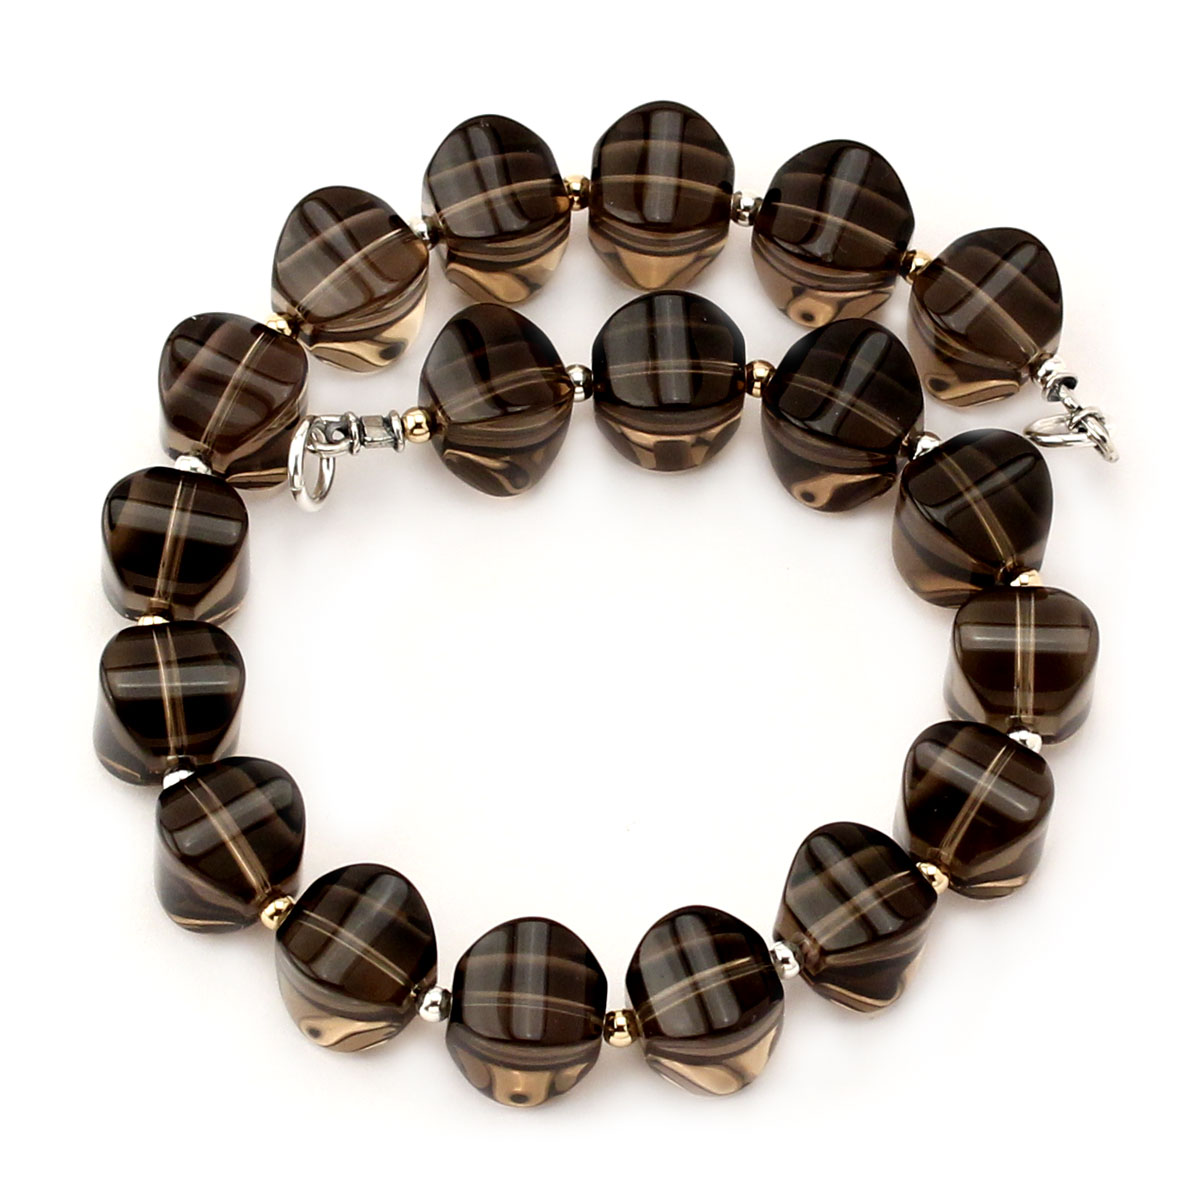 341387-Smokey Quartz Interchangeable Strand